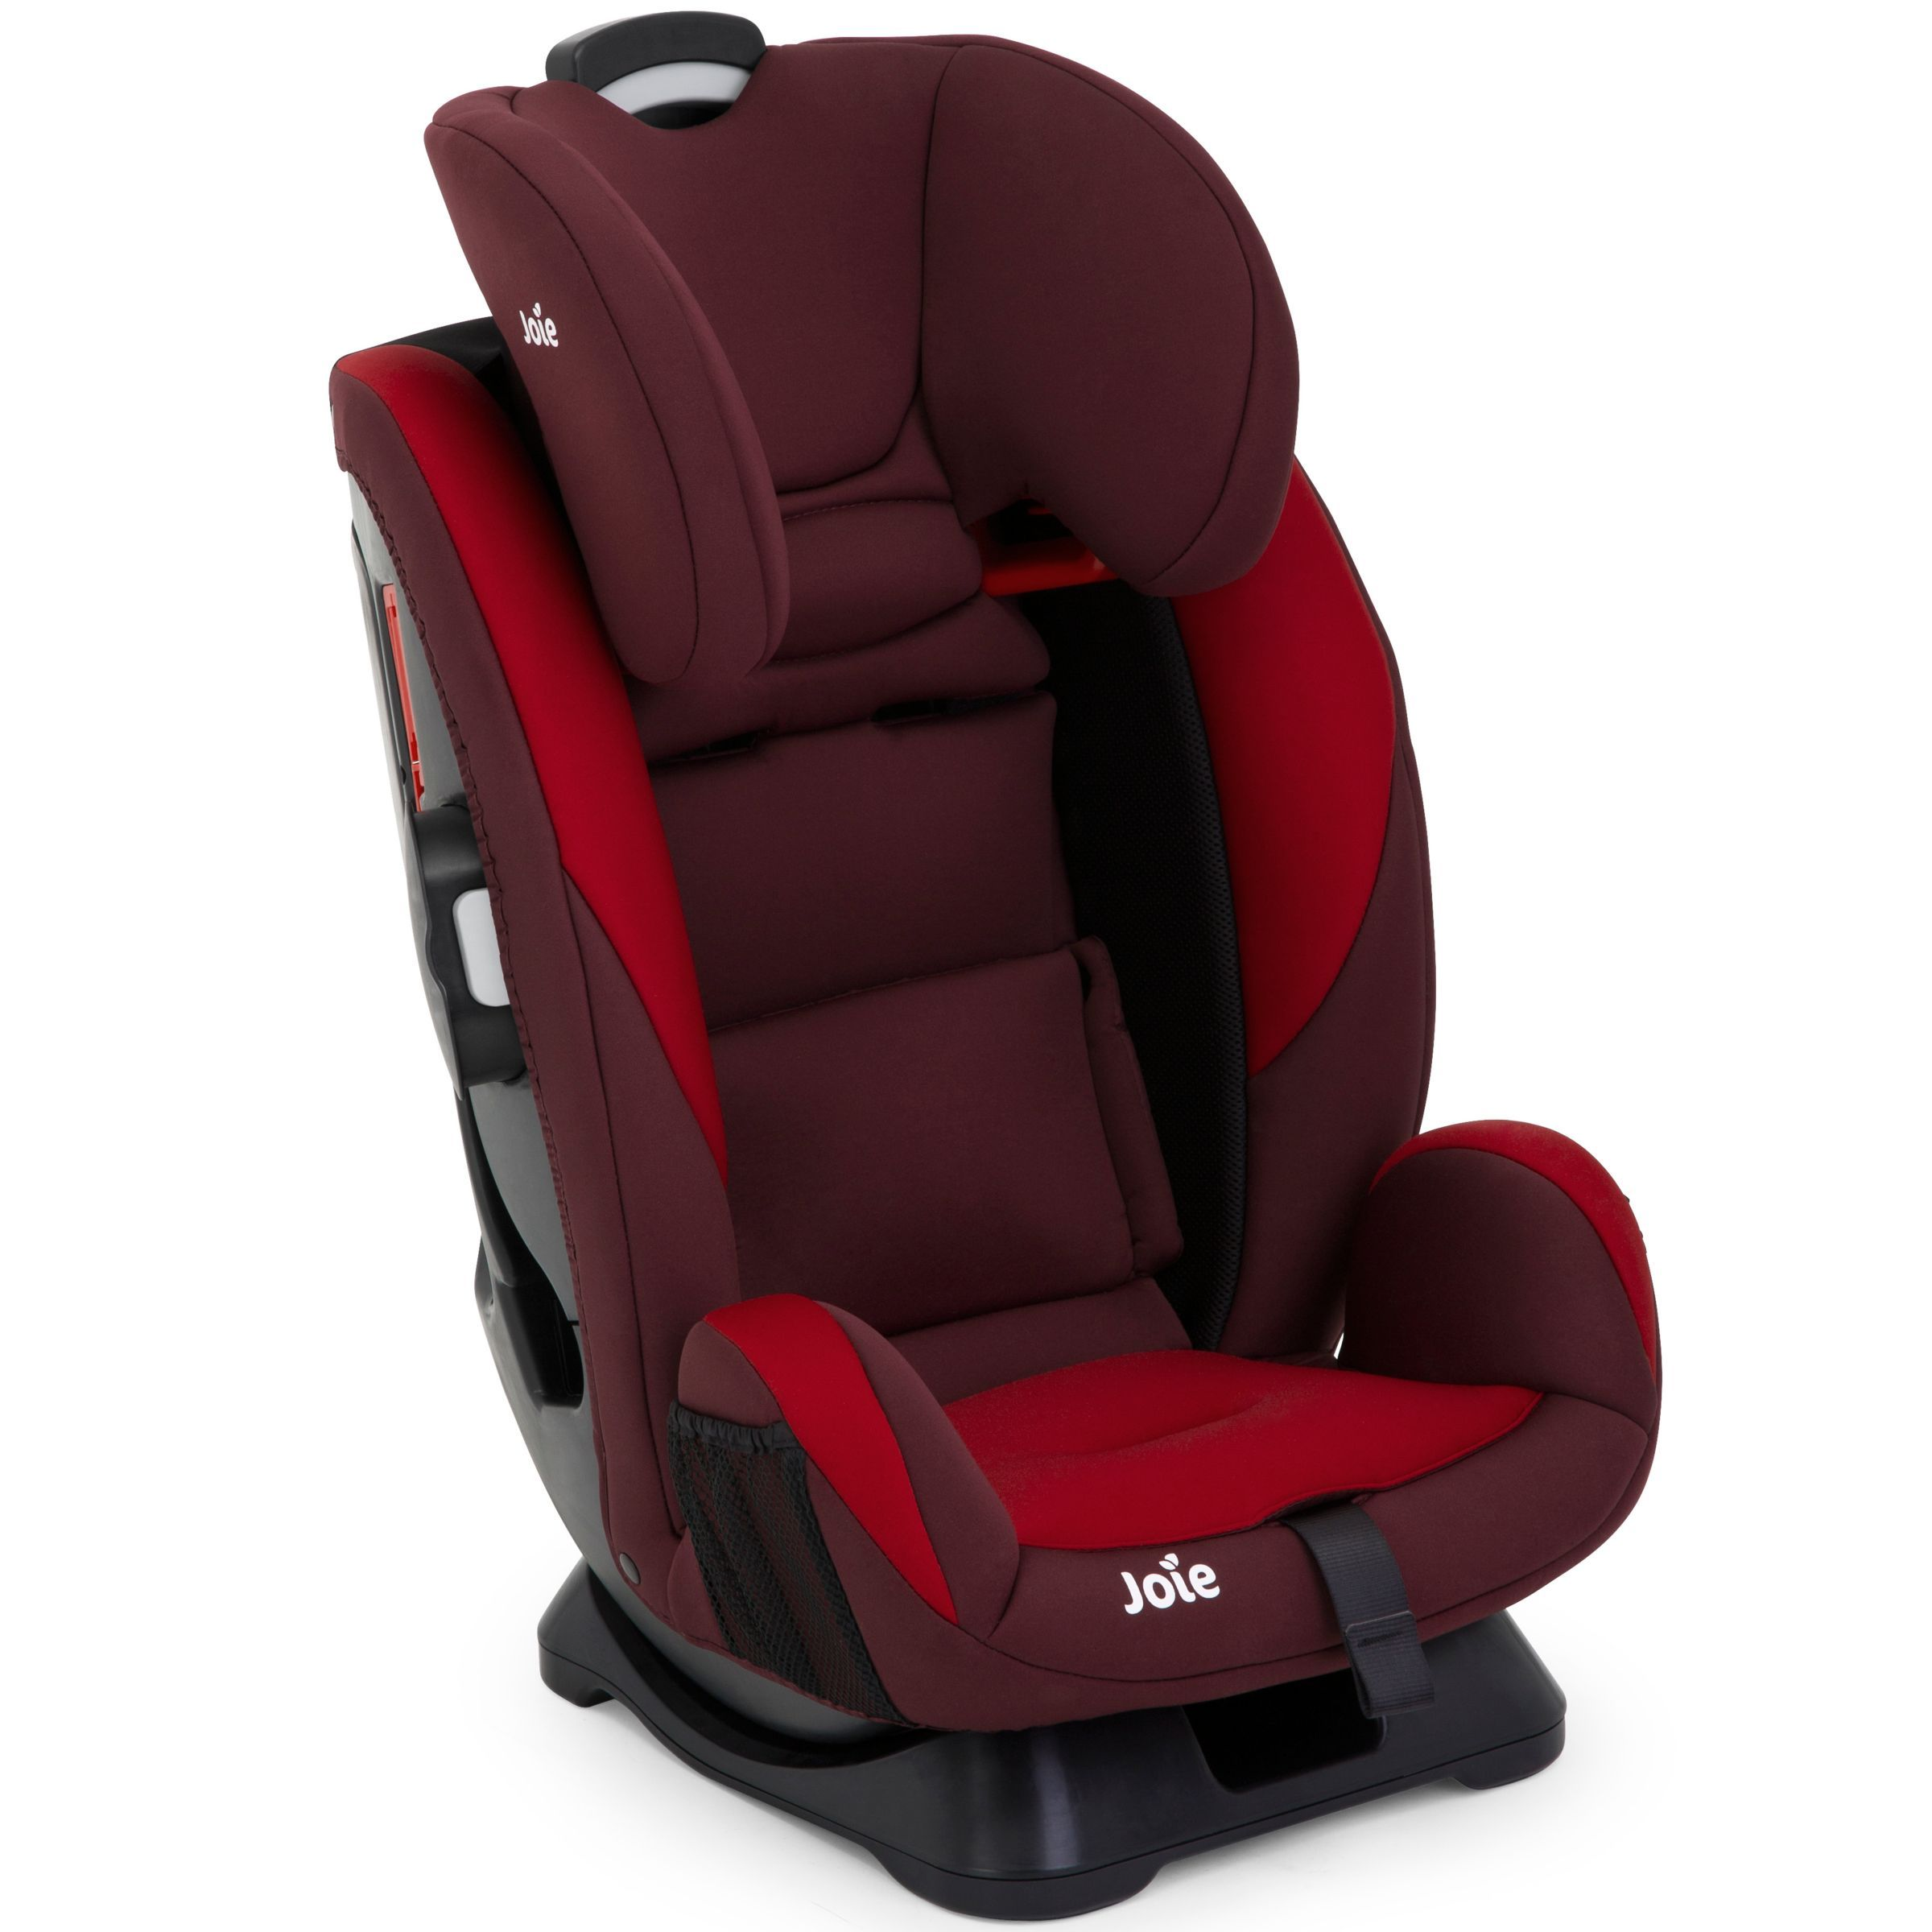 Joie Baby Every Stage Group 0+/1/2/3 Car Seat, Red Car